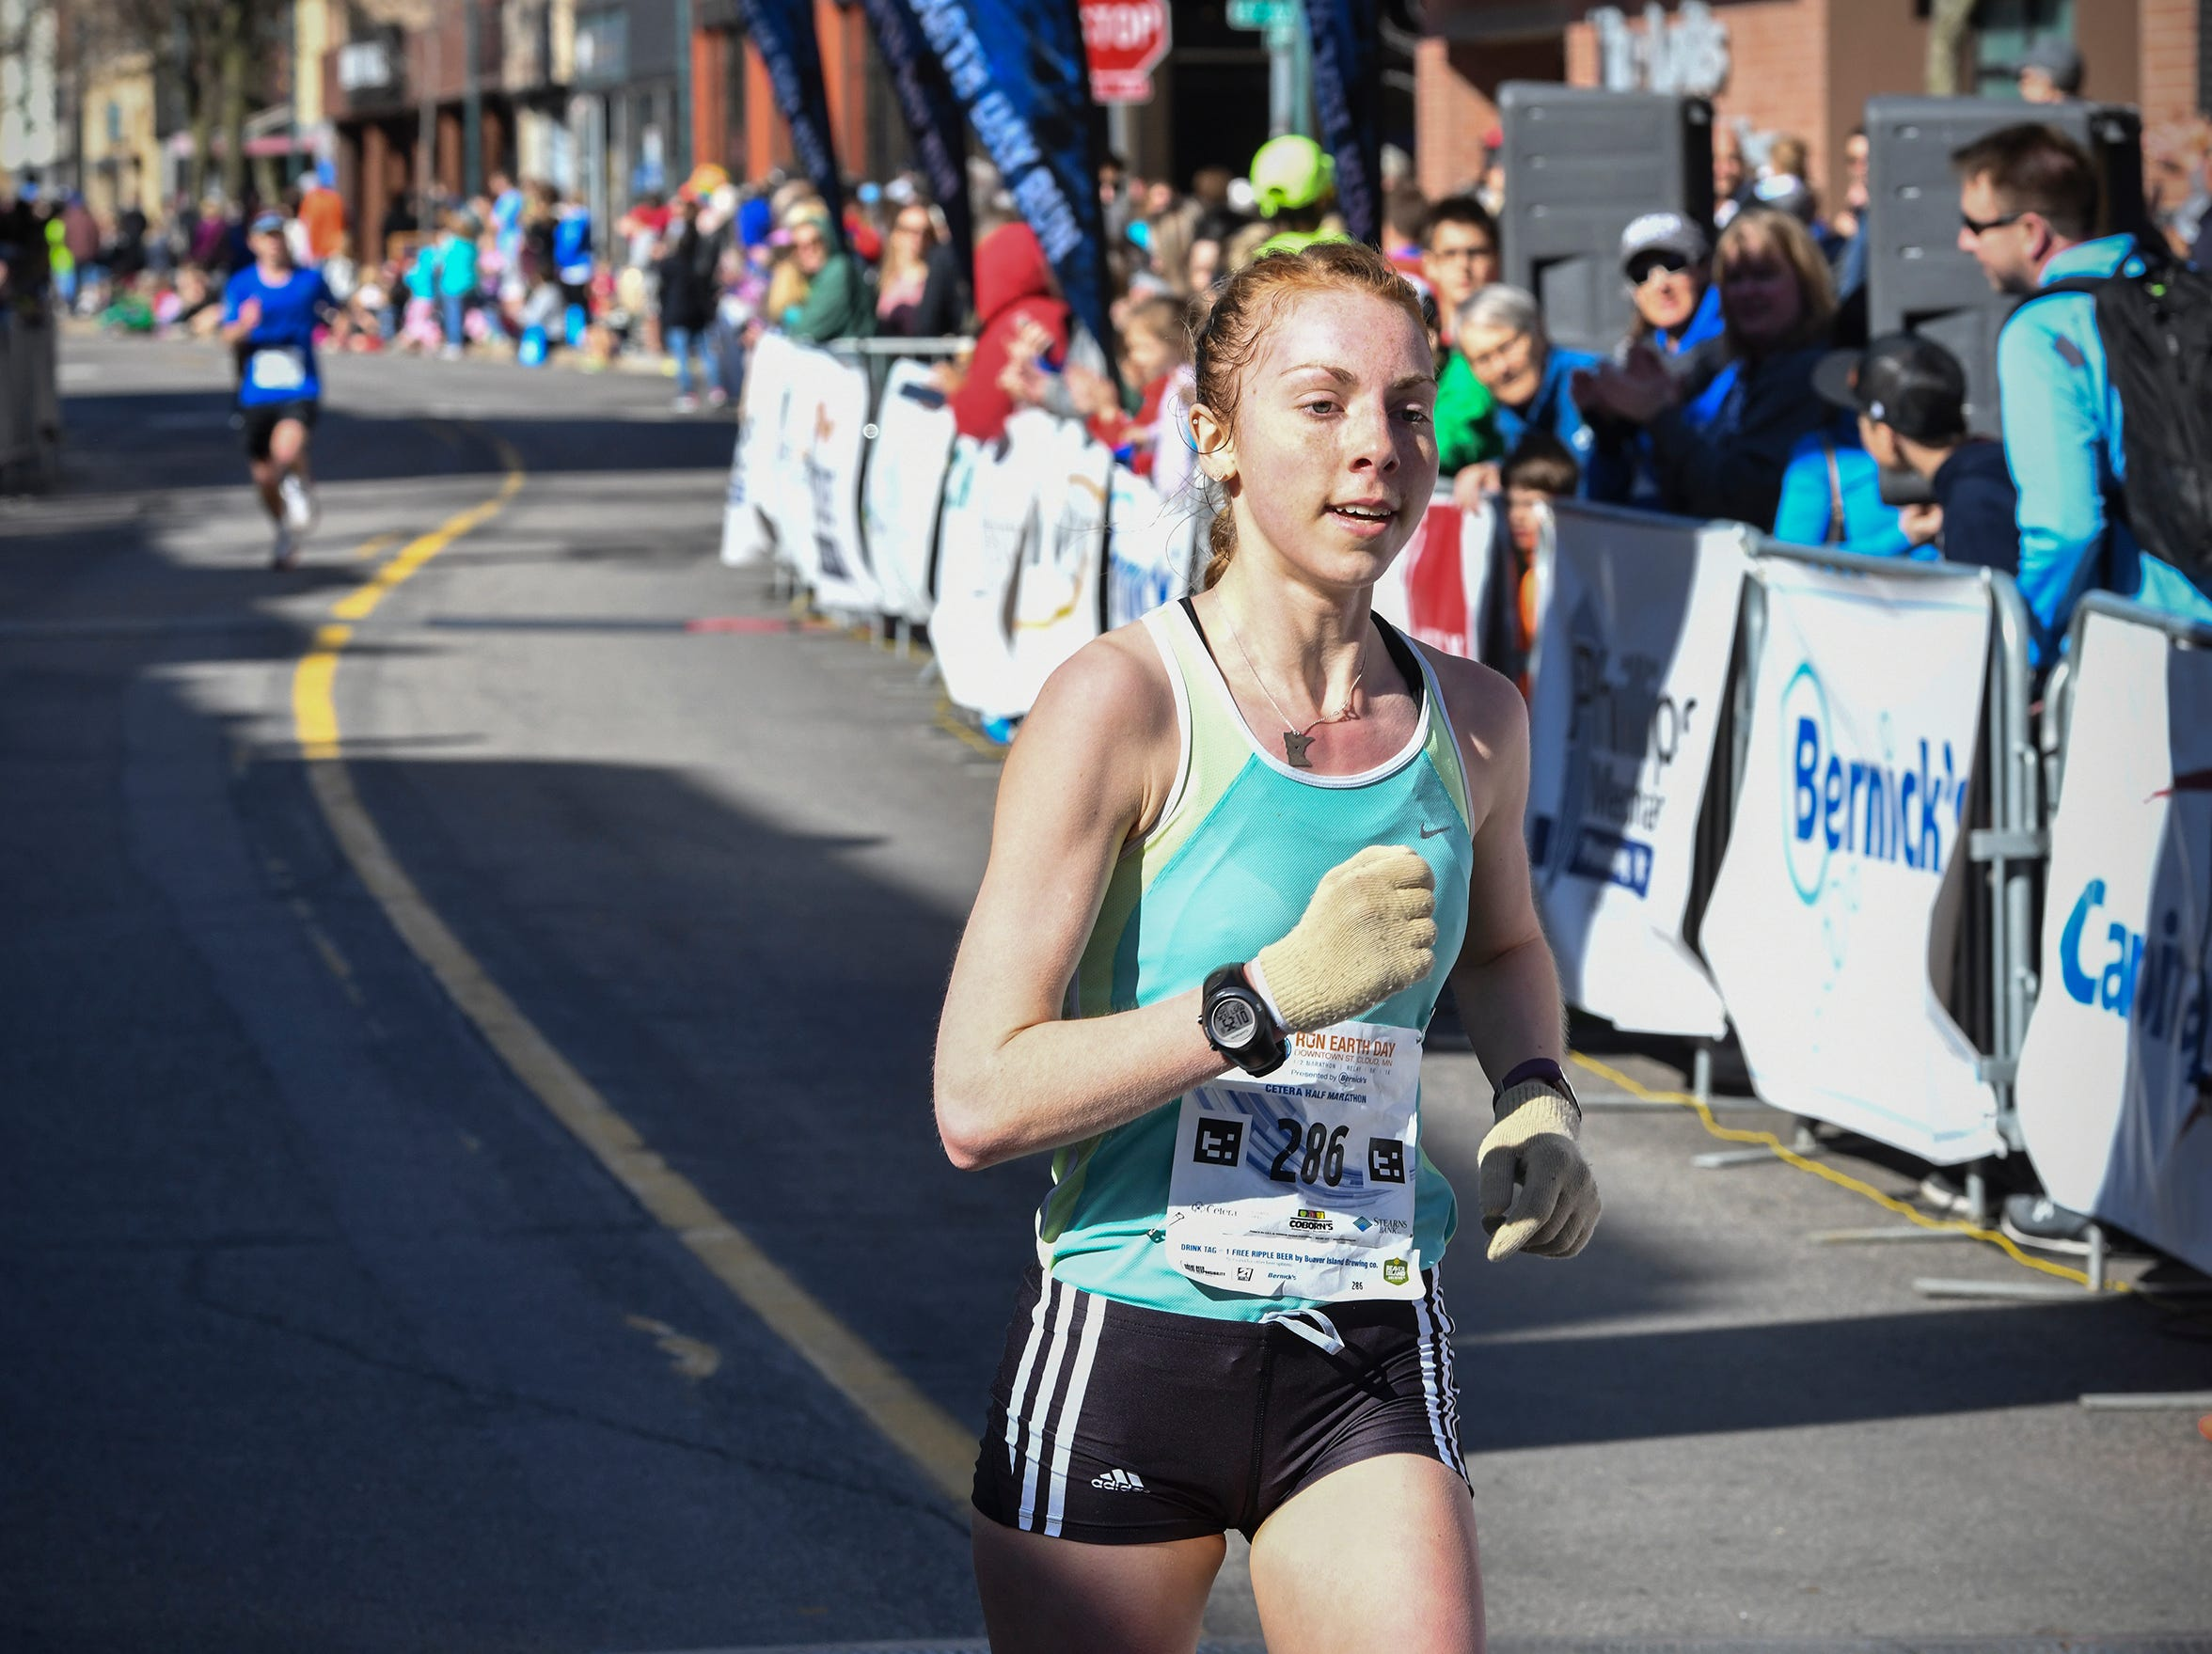 Elena Danielson smiles as she crosses the finish line as the first female finisher during the Cetera Half Marathon as part of CentraCare Health Earth Day Run activities Saturday, April 20, in downtown St. Cloud.